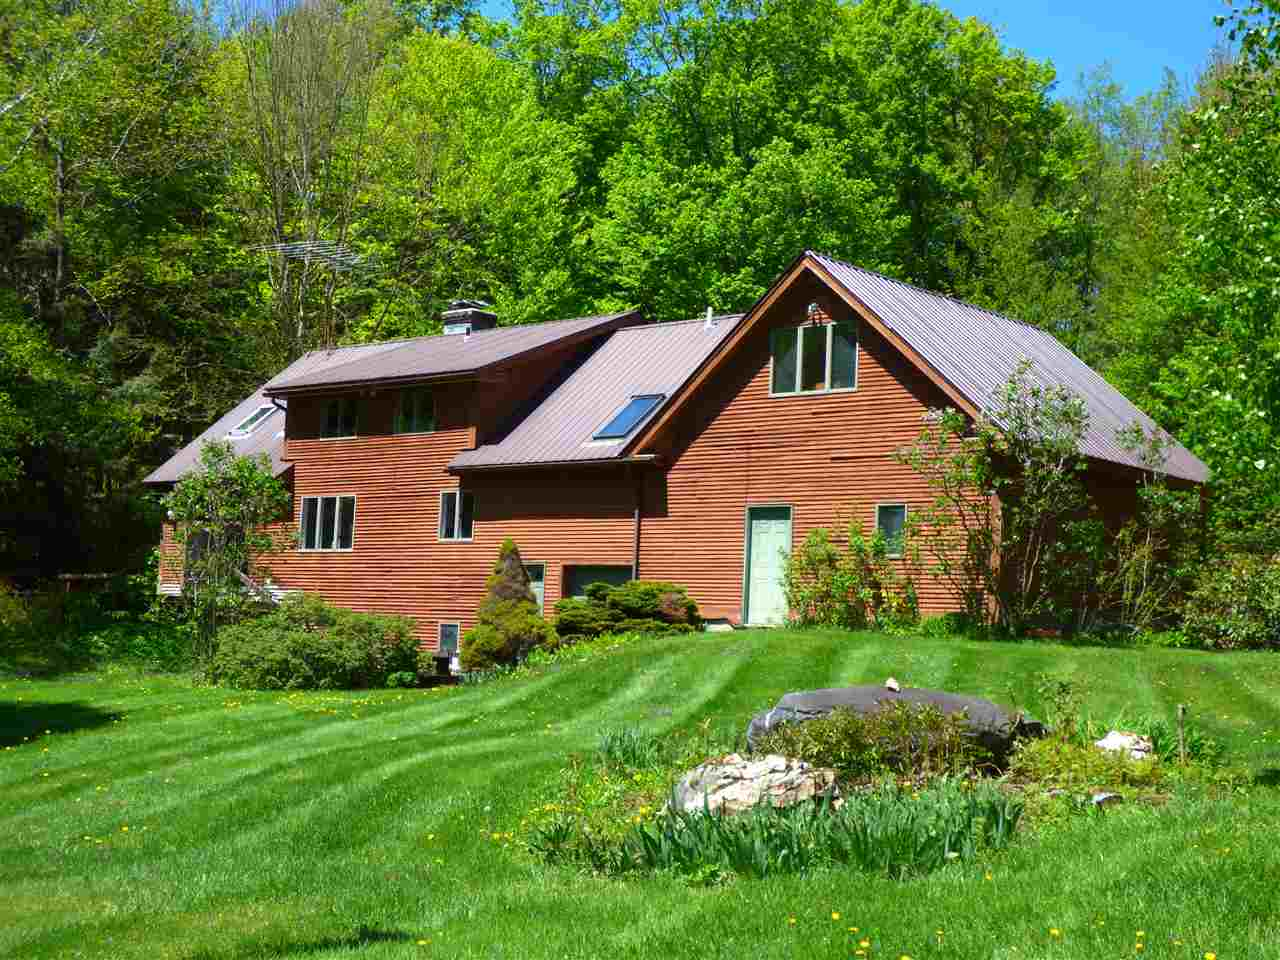 282 Slayton Farm Road, Stowe, VT - USA (photo 1)